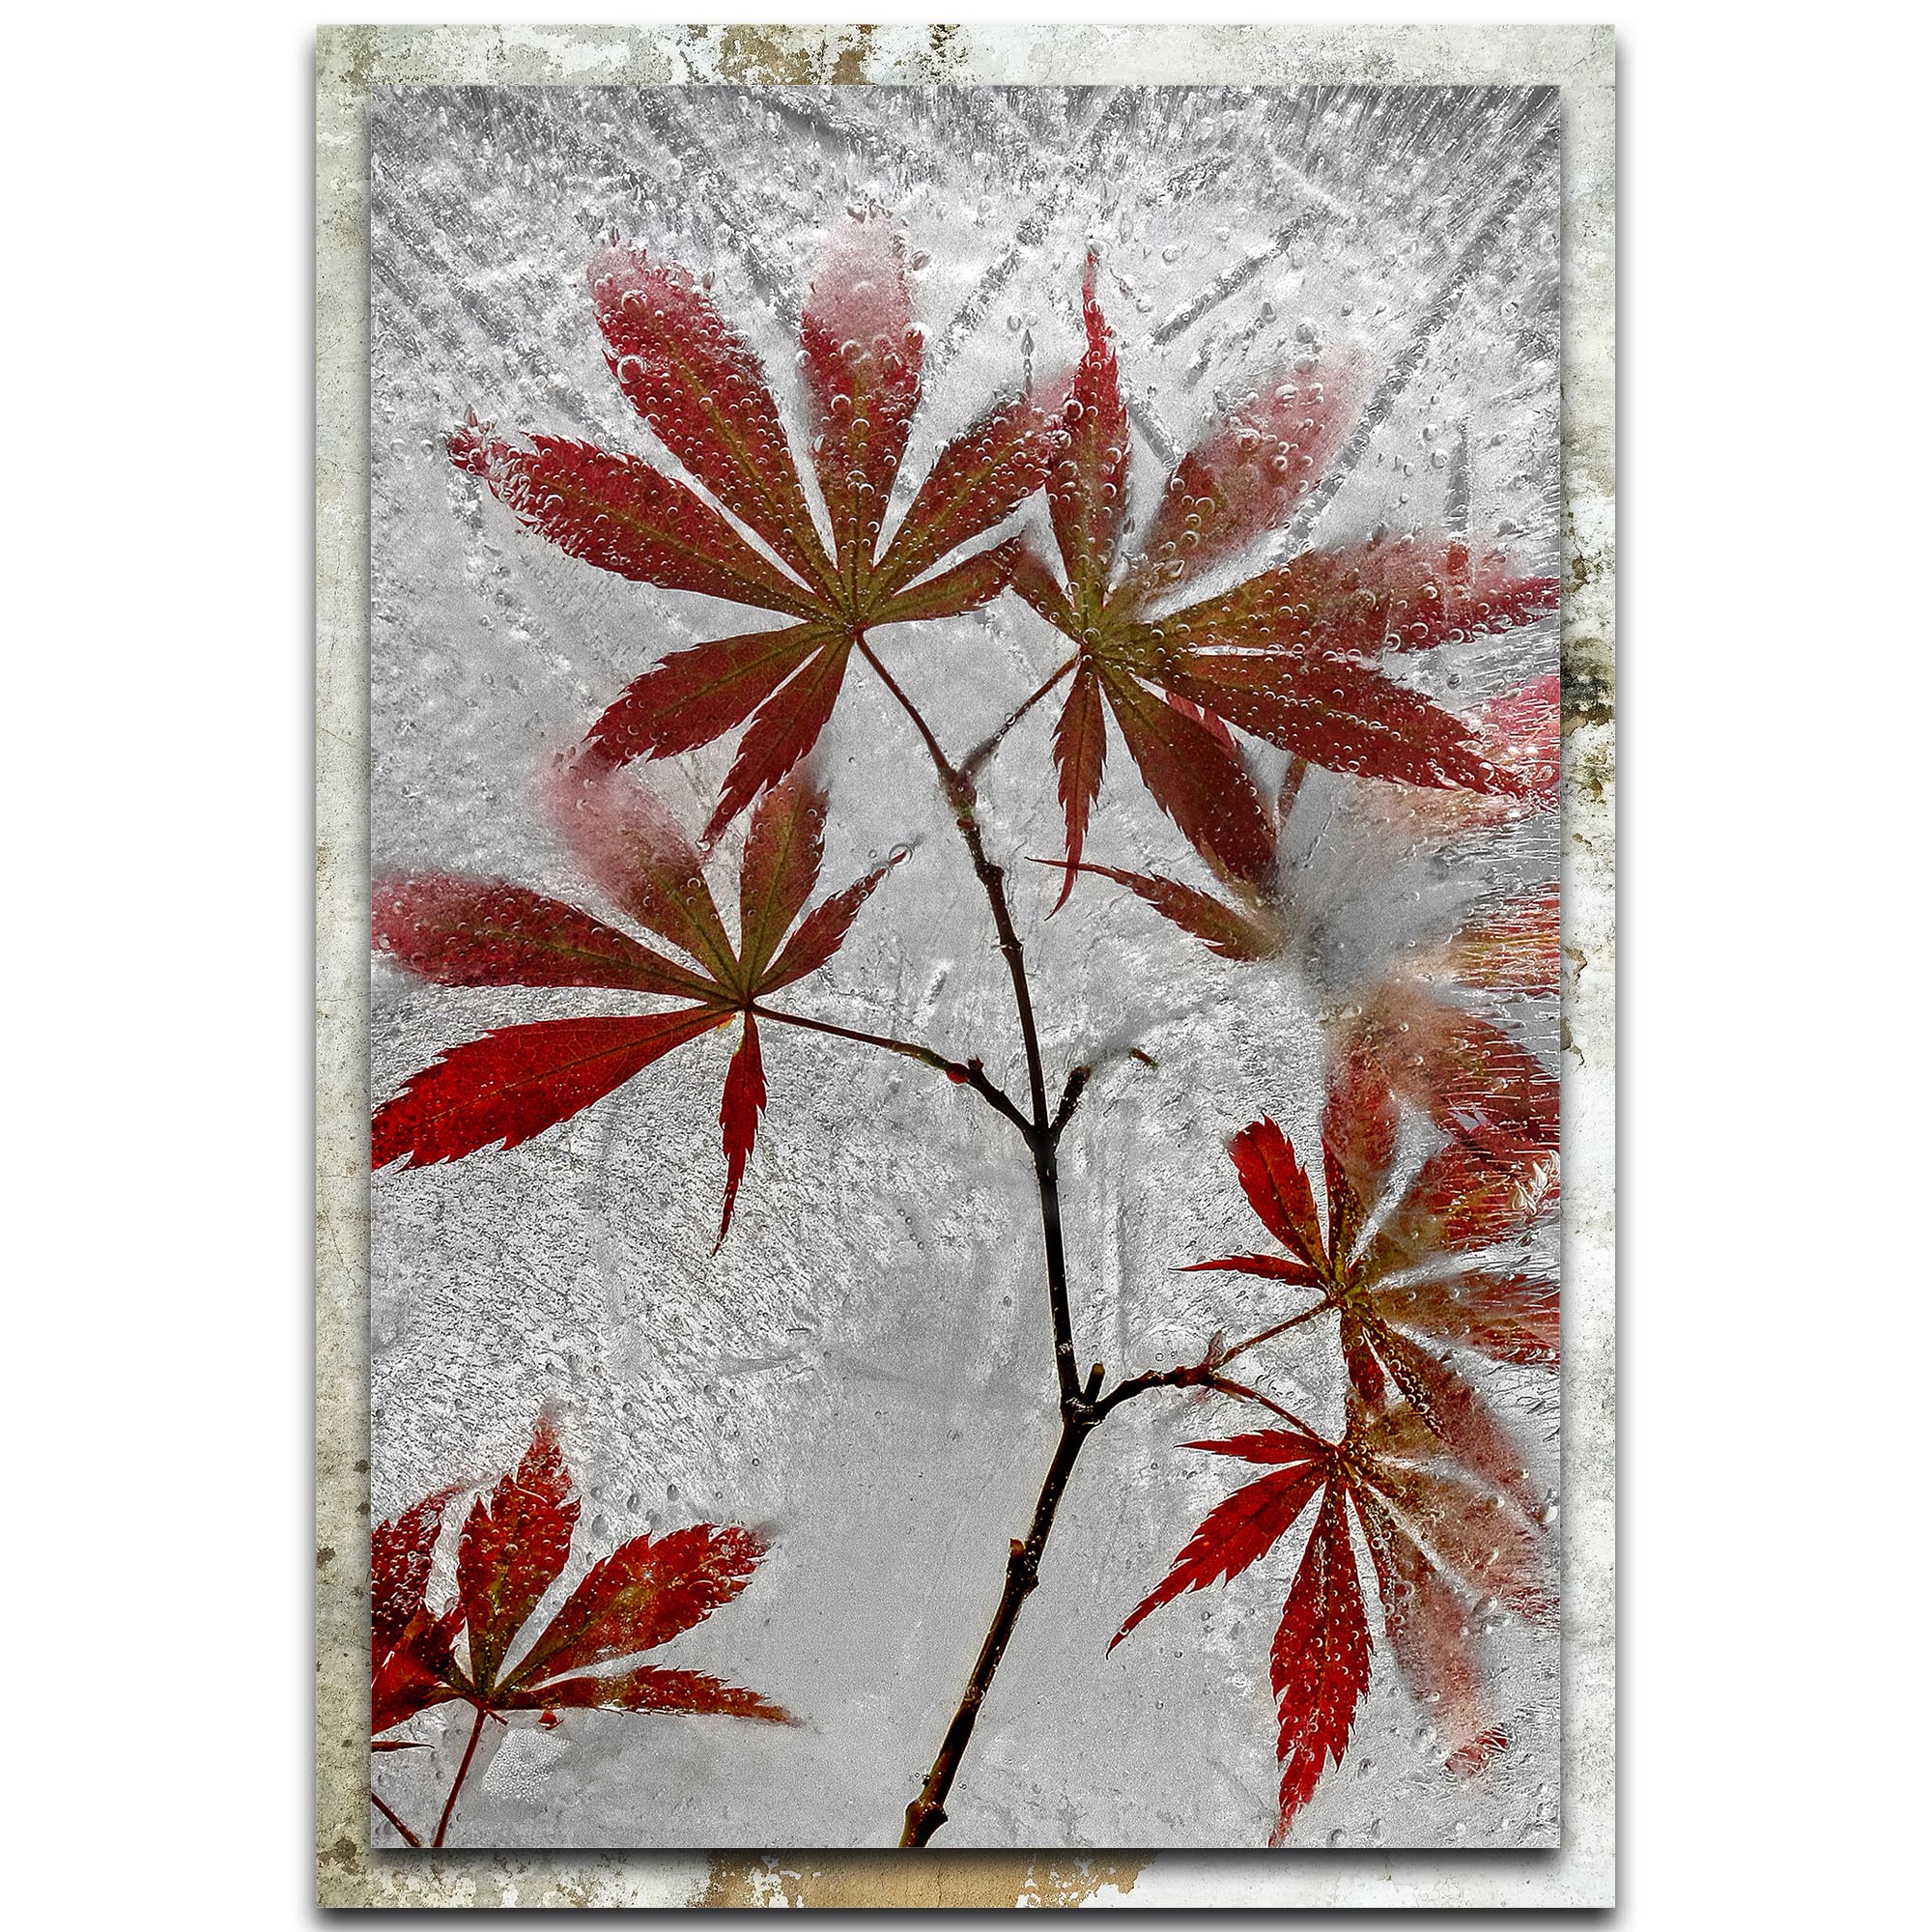 Secundino Losada 'Red Maple' 22in x 32in Modern Farmhouse Floral on Metal